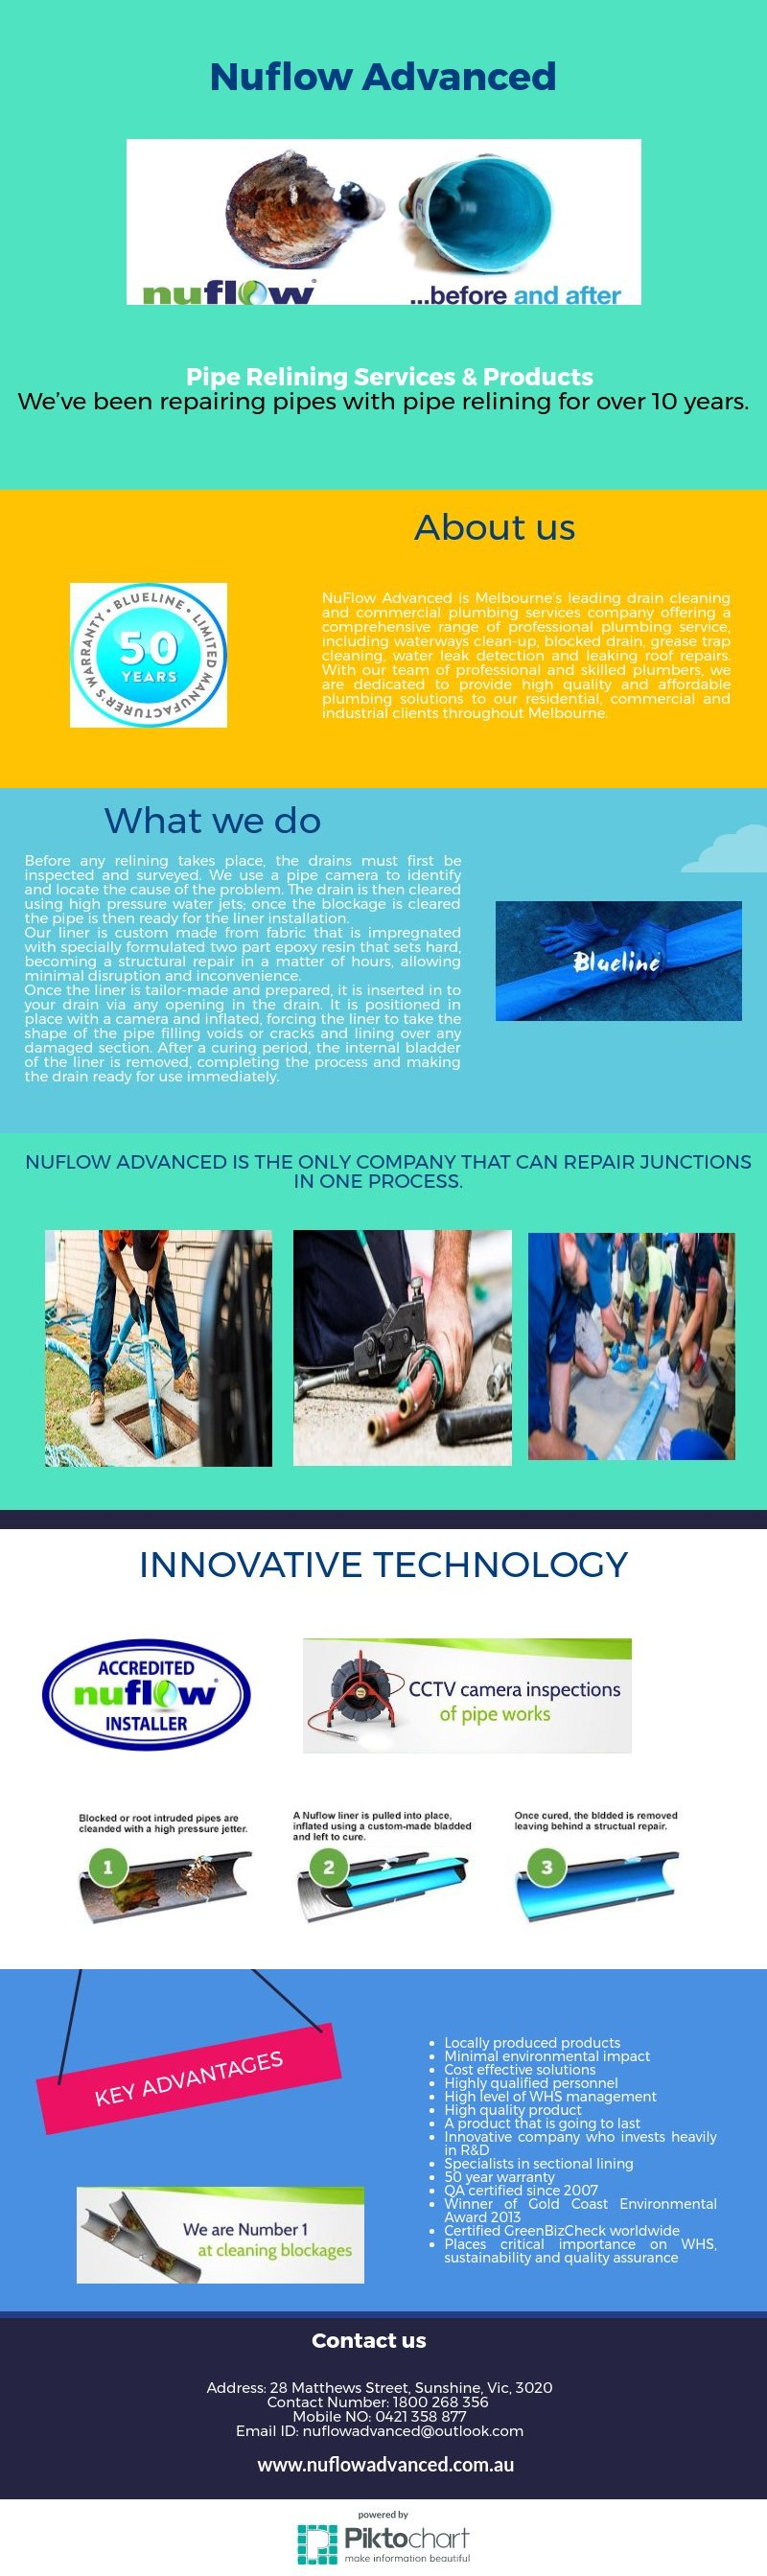 NuFlow Advanced is Melbourne's trusted draincleaning and